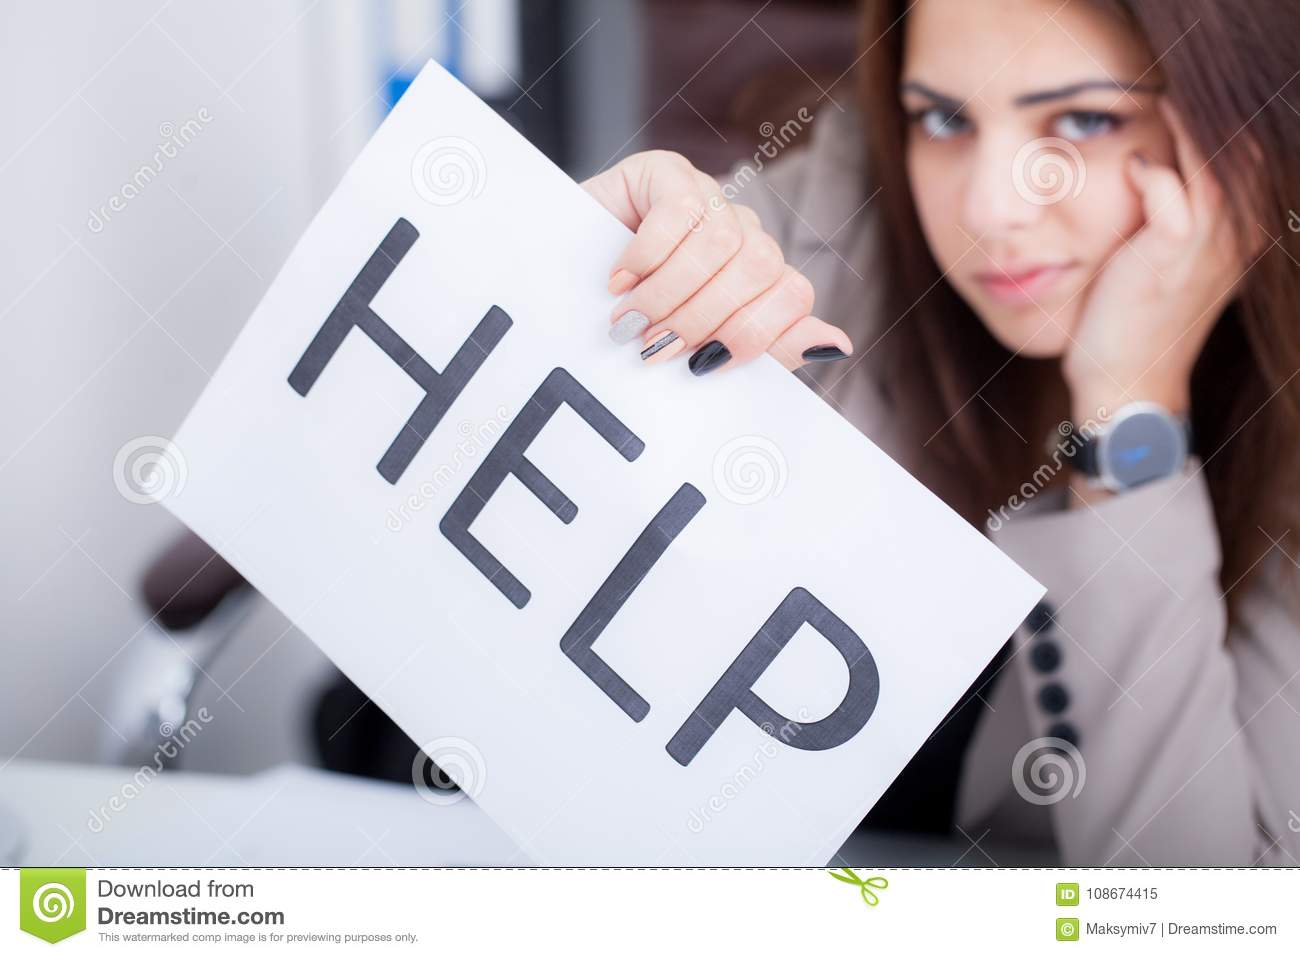 Stressed business woman imploring for help, holding a cardboard